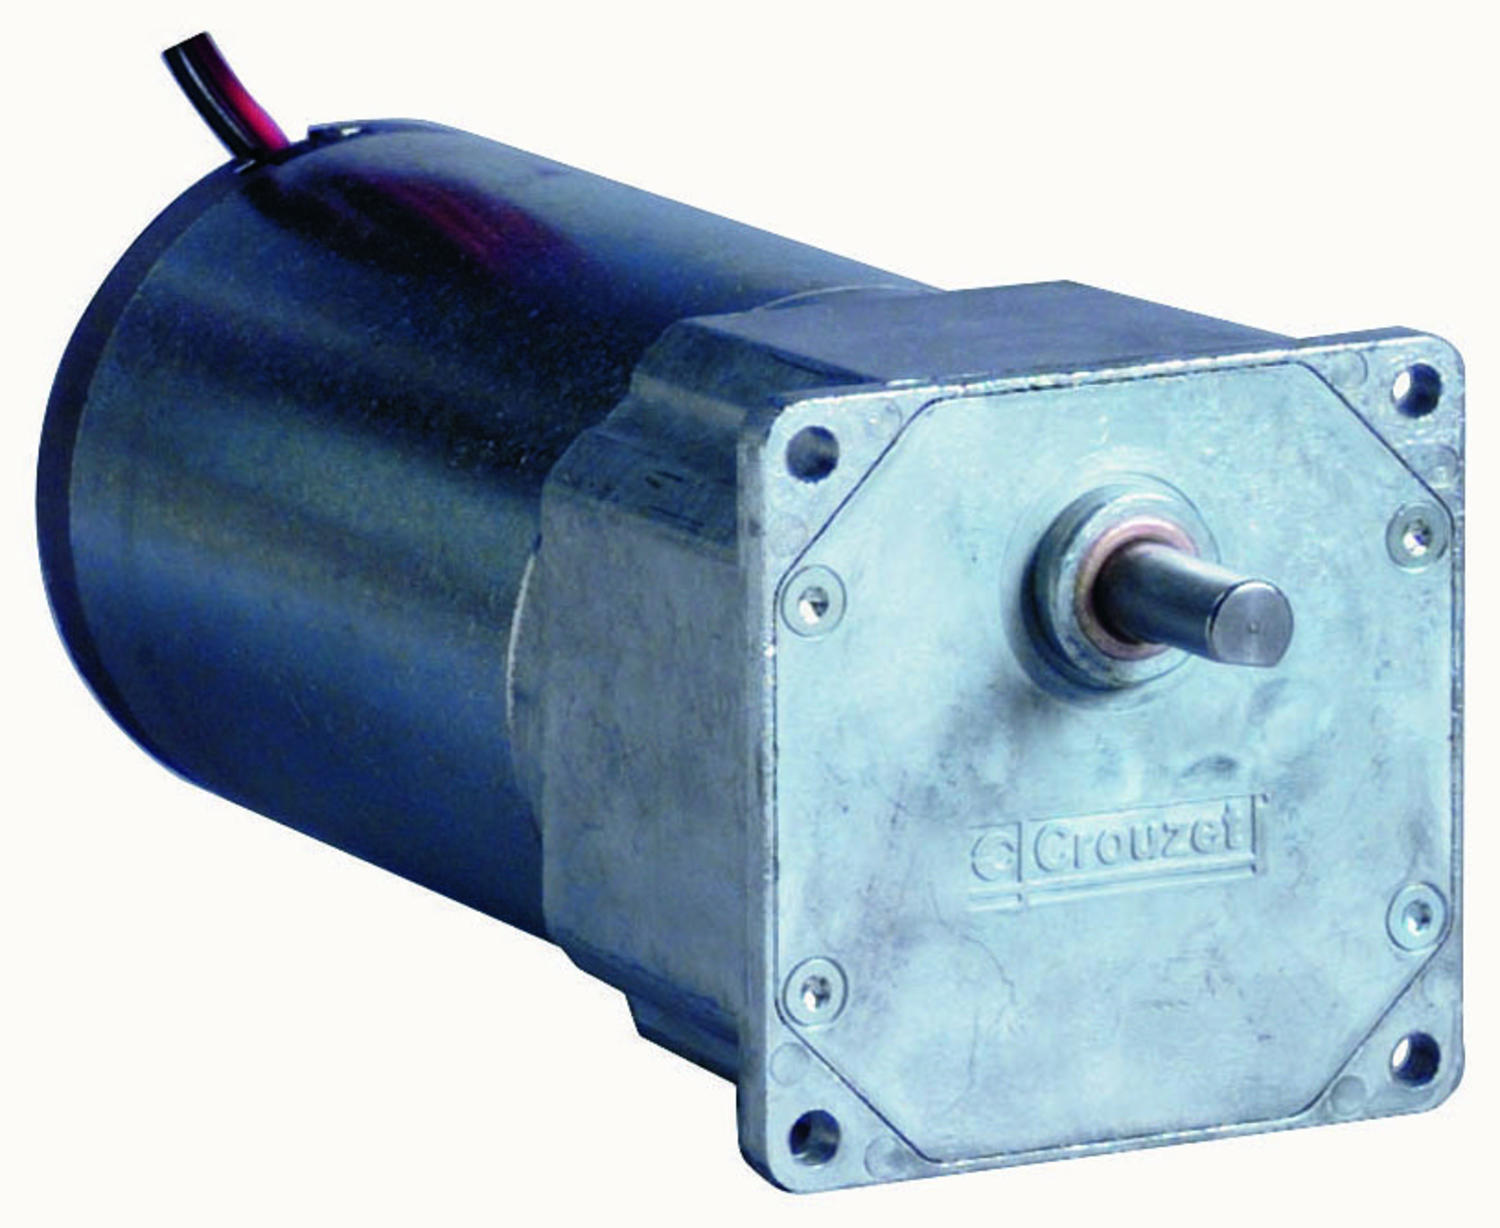 80835xxx DC motor with spur gearbox - Industrial DC Series